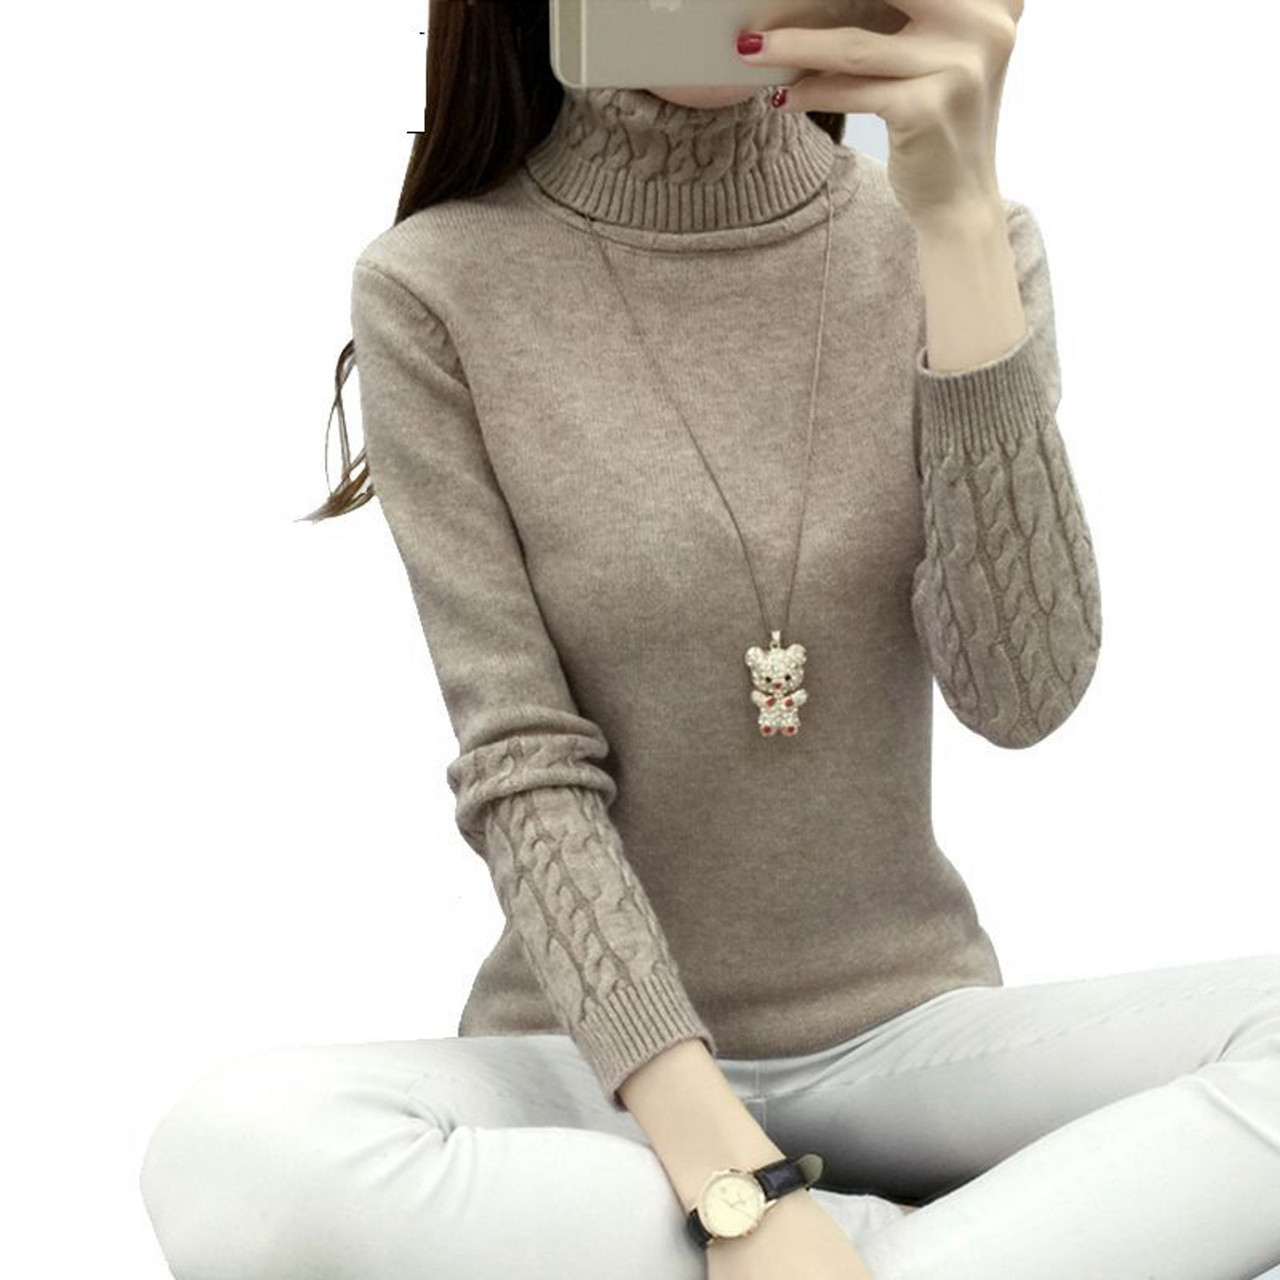 929d376b2a OHCLOTHING Women Turtleneck Winter Sweater Women 2018 Long Sleeve Knitted Women  Sweaters And Pullovers Female Jumper ...